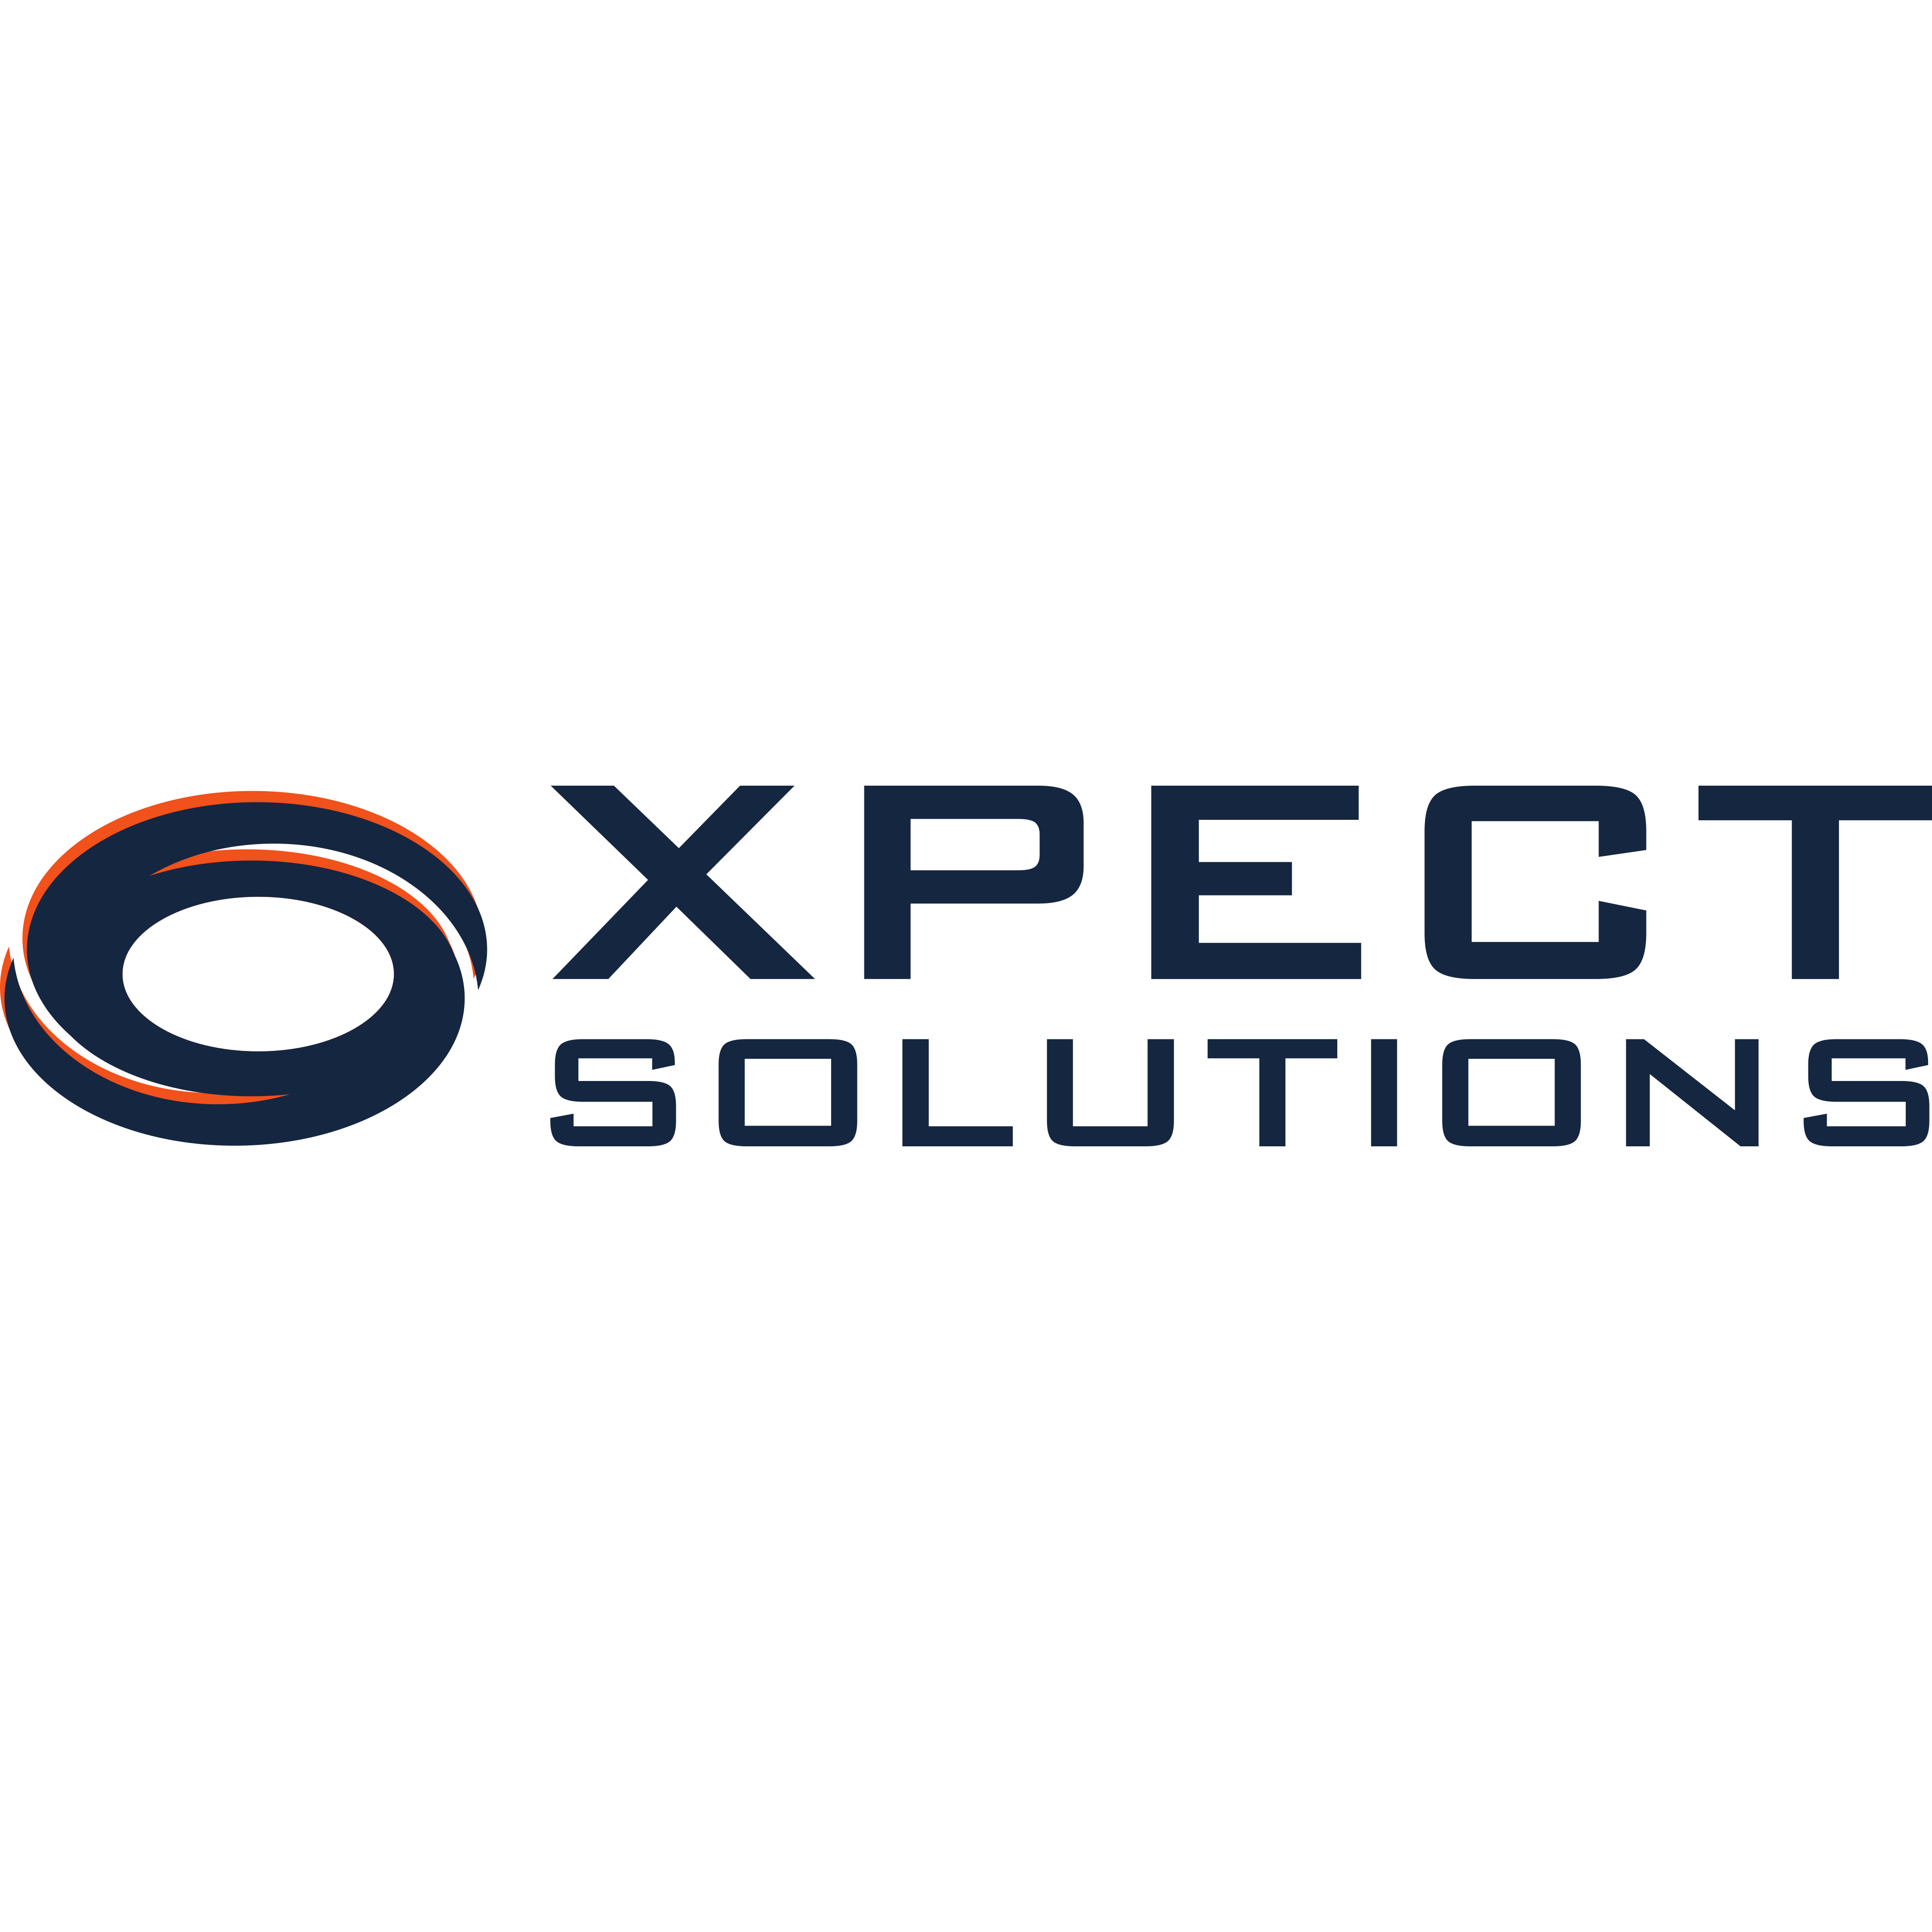 Xpect Solutions, Inc.